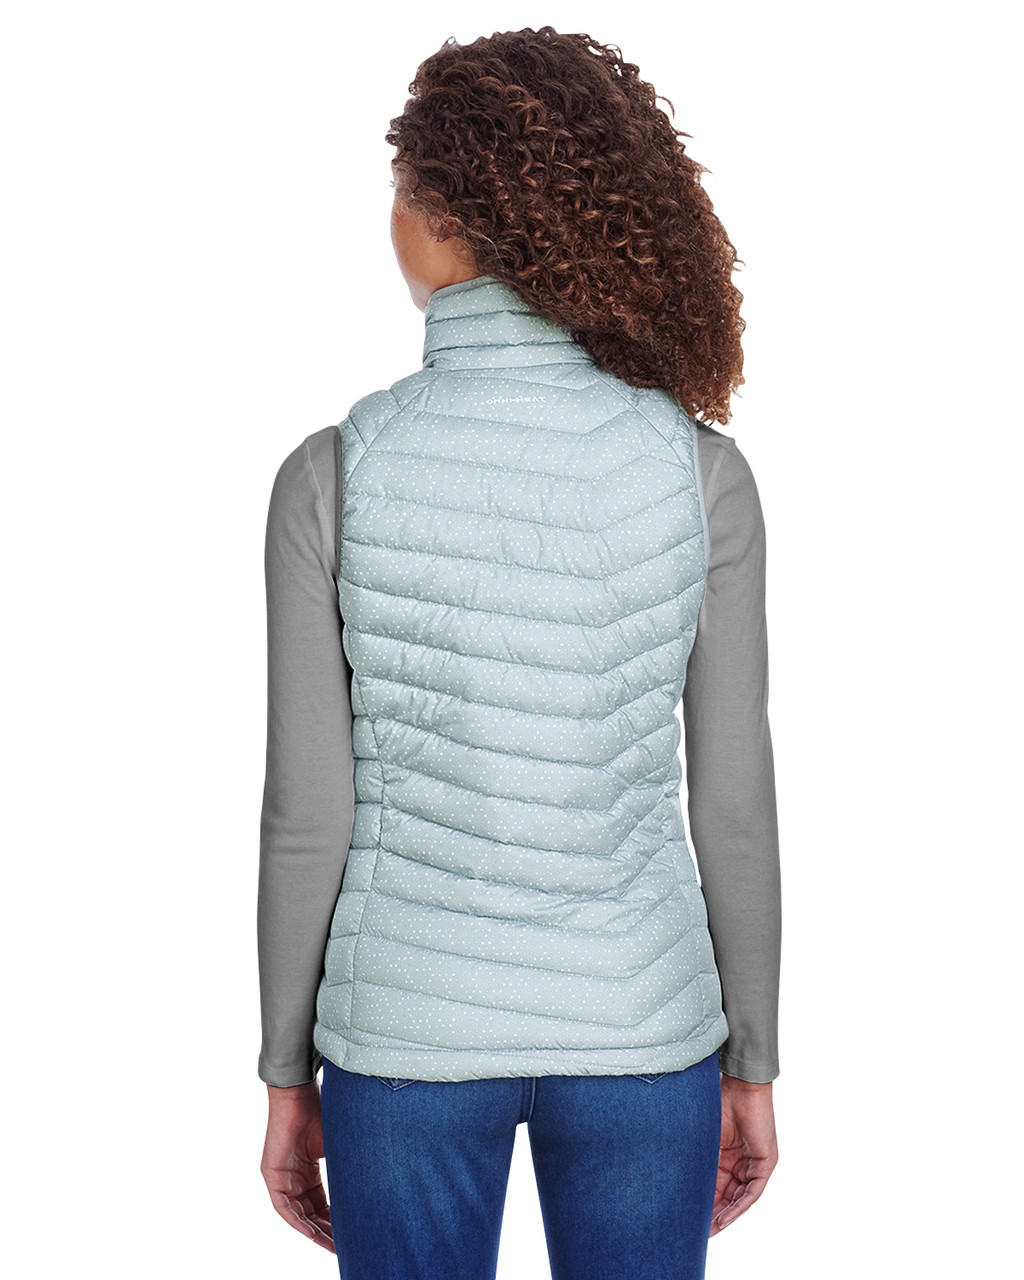 Cypress Grey - 1757411 Columbia Ladies' Powder Lite Vest | BlankClothing.ca